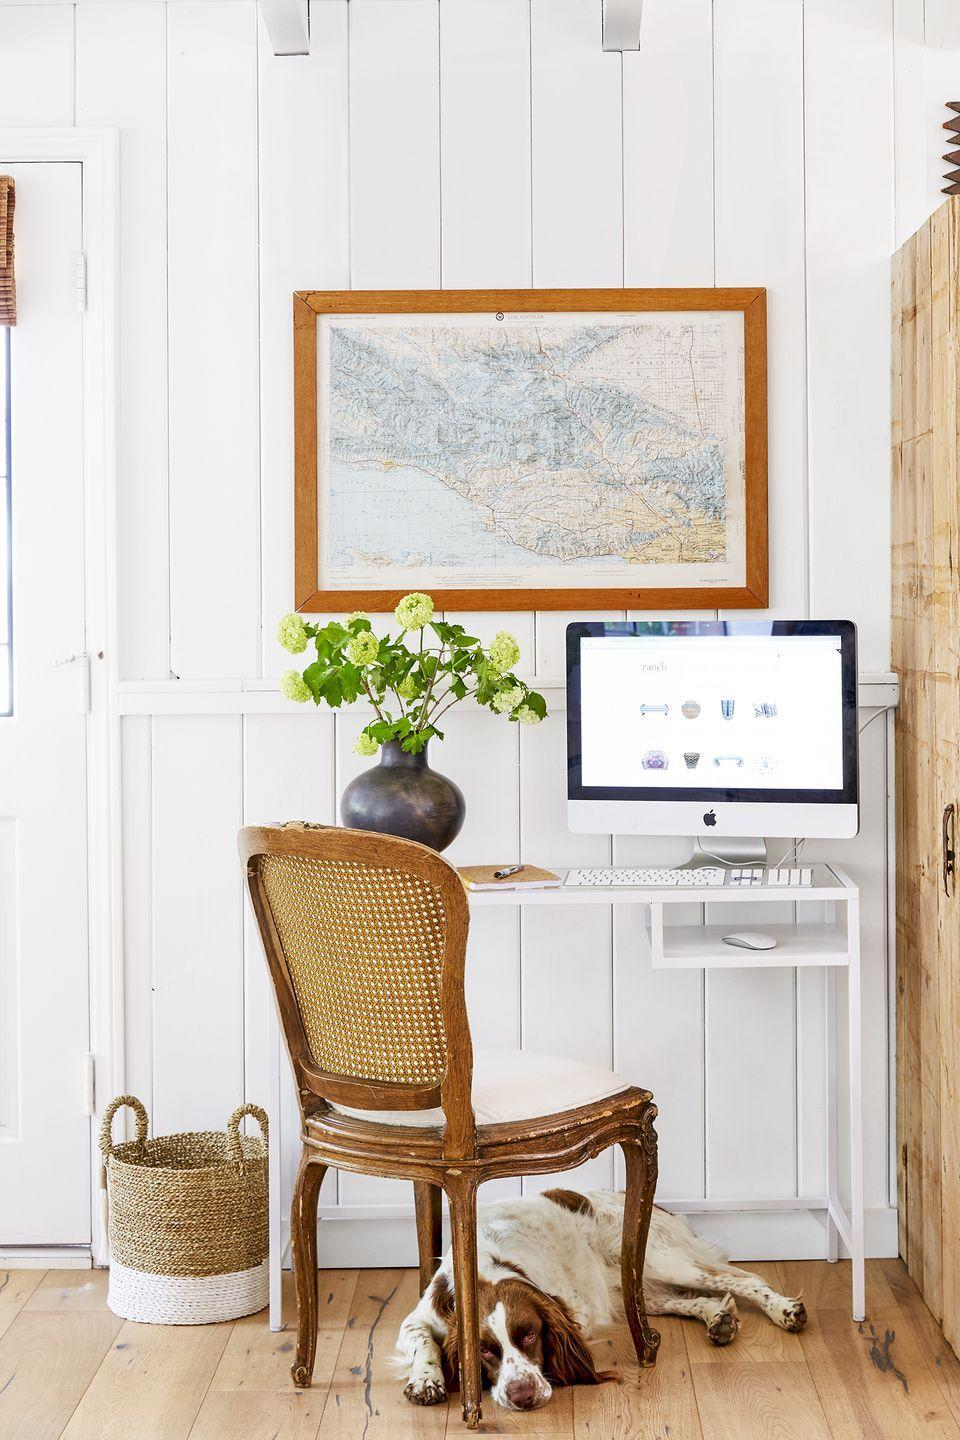 """<p>To mix warm and cool tones, pair a minimalistic white desk with a contrasting antique chair. Decorate with baskets, paintings, or accessories that combine the two colors.</p><p><strong>RELATED: </strong><a href=""""https://www.goodhousekeeping.com/home/decorating-ideas/a32824185/minimalist-living/"""" rel=""""nofollow noopener"""" target=""""_blank"""" data-ylk=""""slk:What Is Minimalist Living? Here's How to Start Living With Less, According to Experts"""" class=""""link rapid-noclick-resp"""">What Is Minimalist Living? Here's How to Start Living With Less, According to Experts</a></p>"""